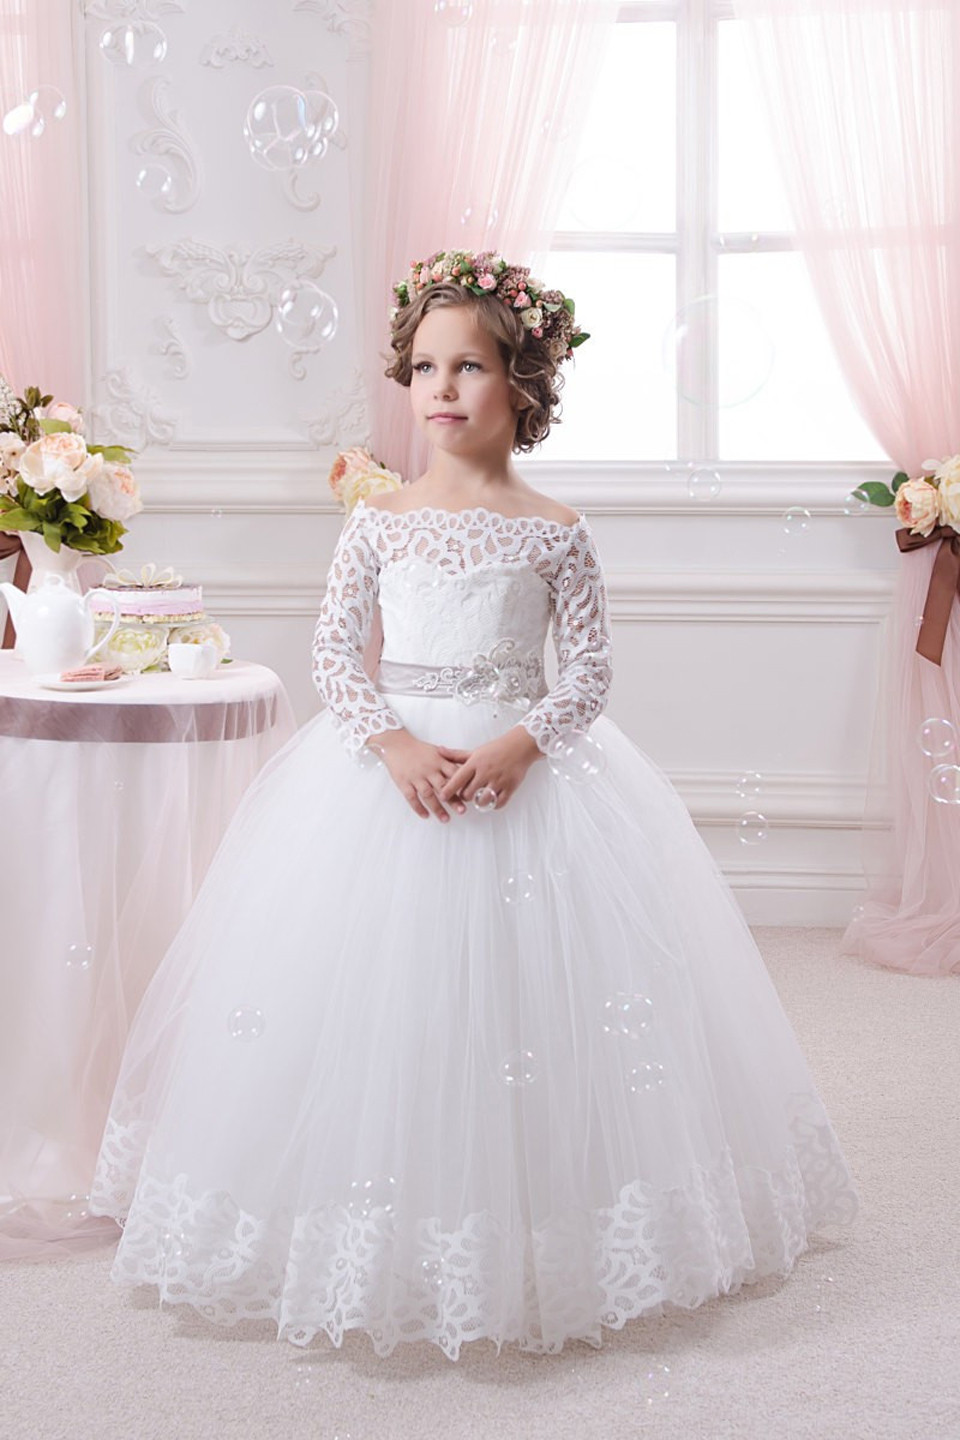 Stunning Long Sleeve Lace White Flower Girls Dresses For Weddings Party Ball Gown 2017 Girls Applique Mother Daughter Dresses 6 pcs lot endstop mechanical limit switches 3d printer switch for ramps 1 4 free shipping dropshipping